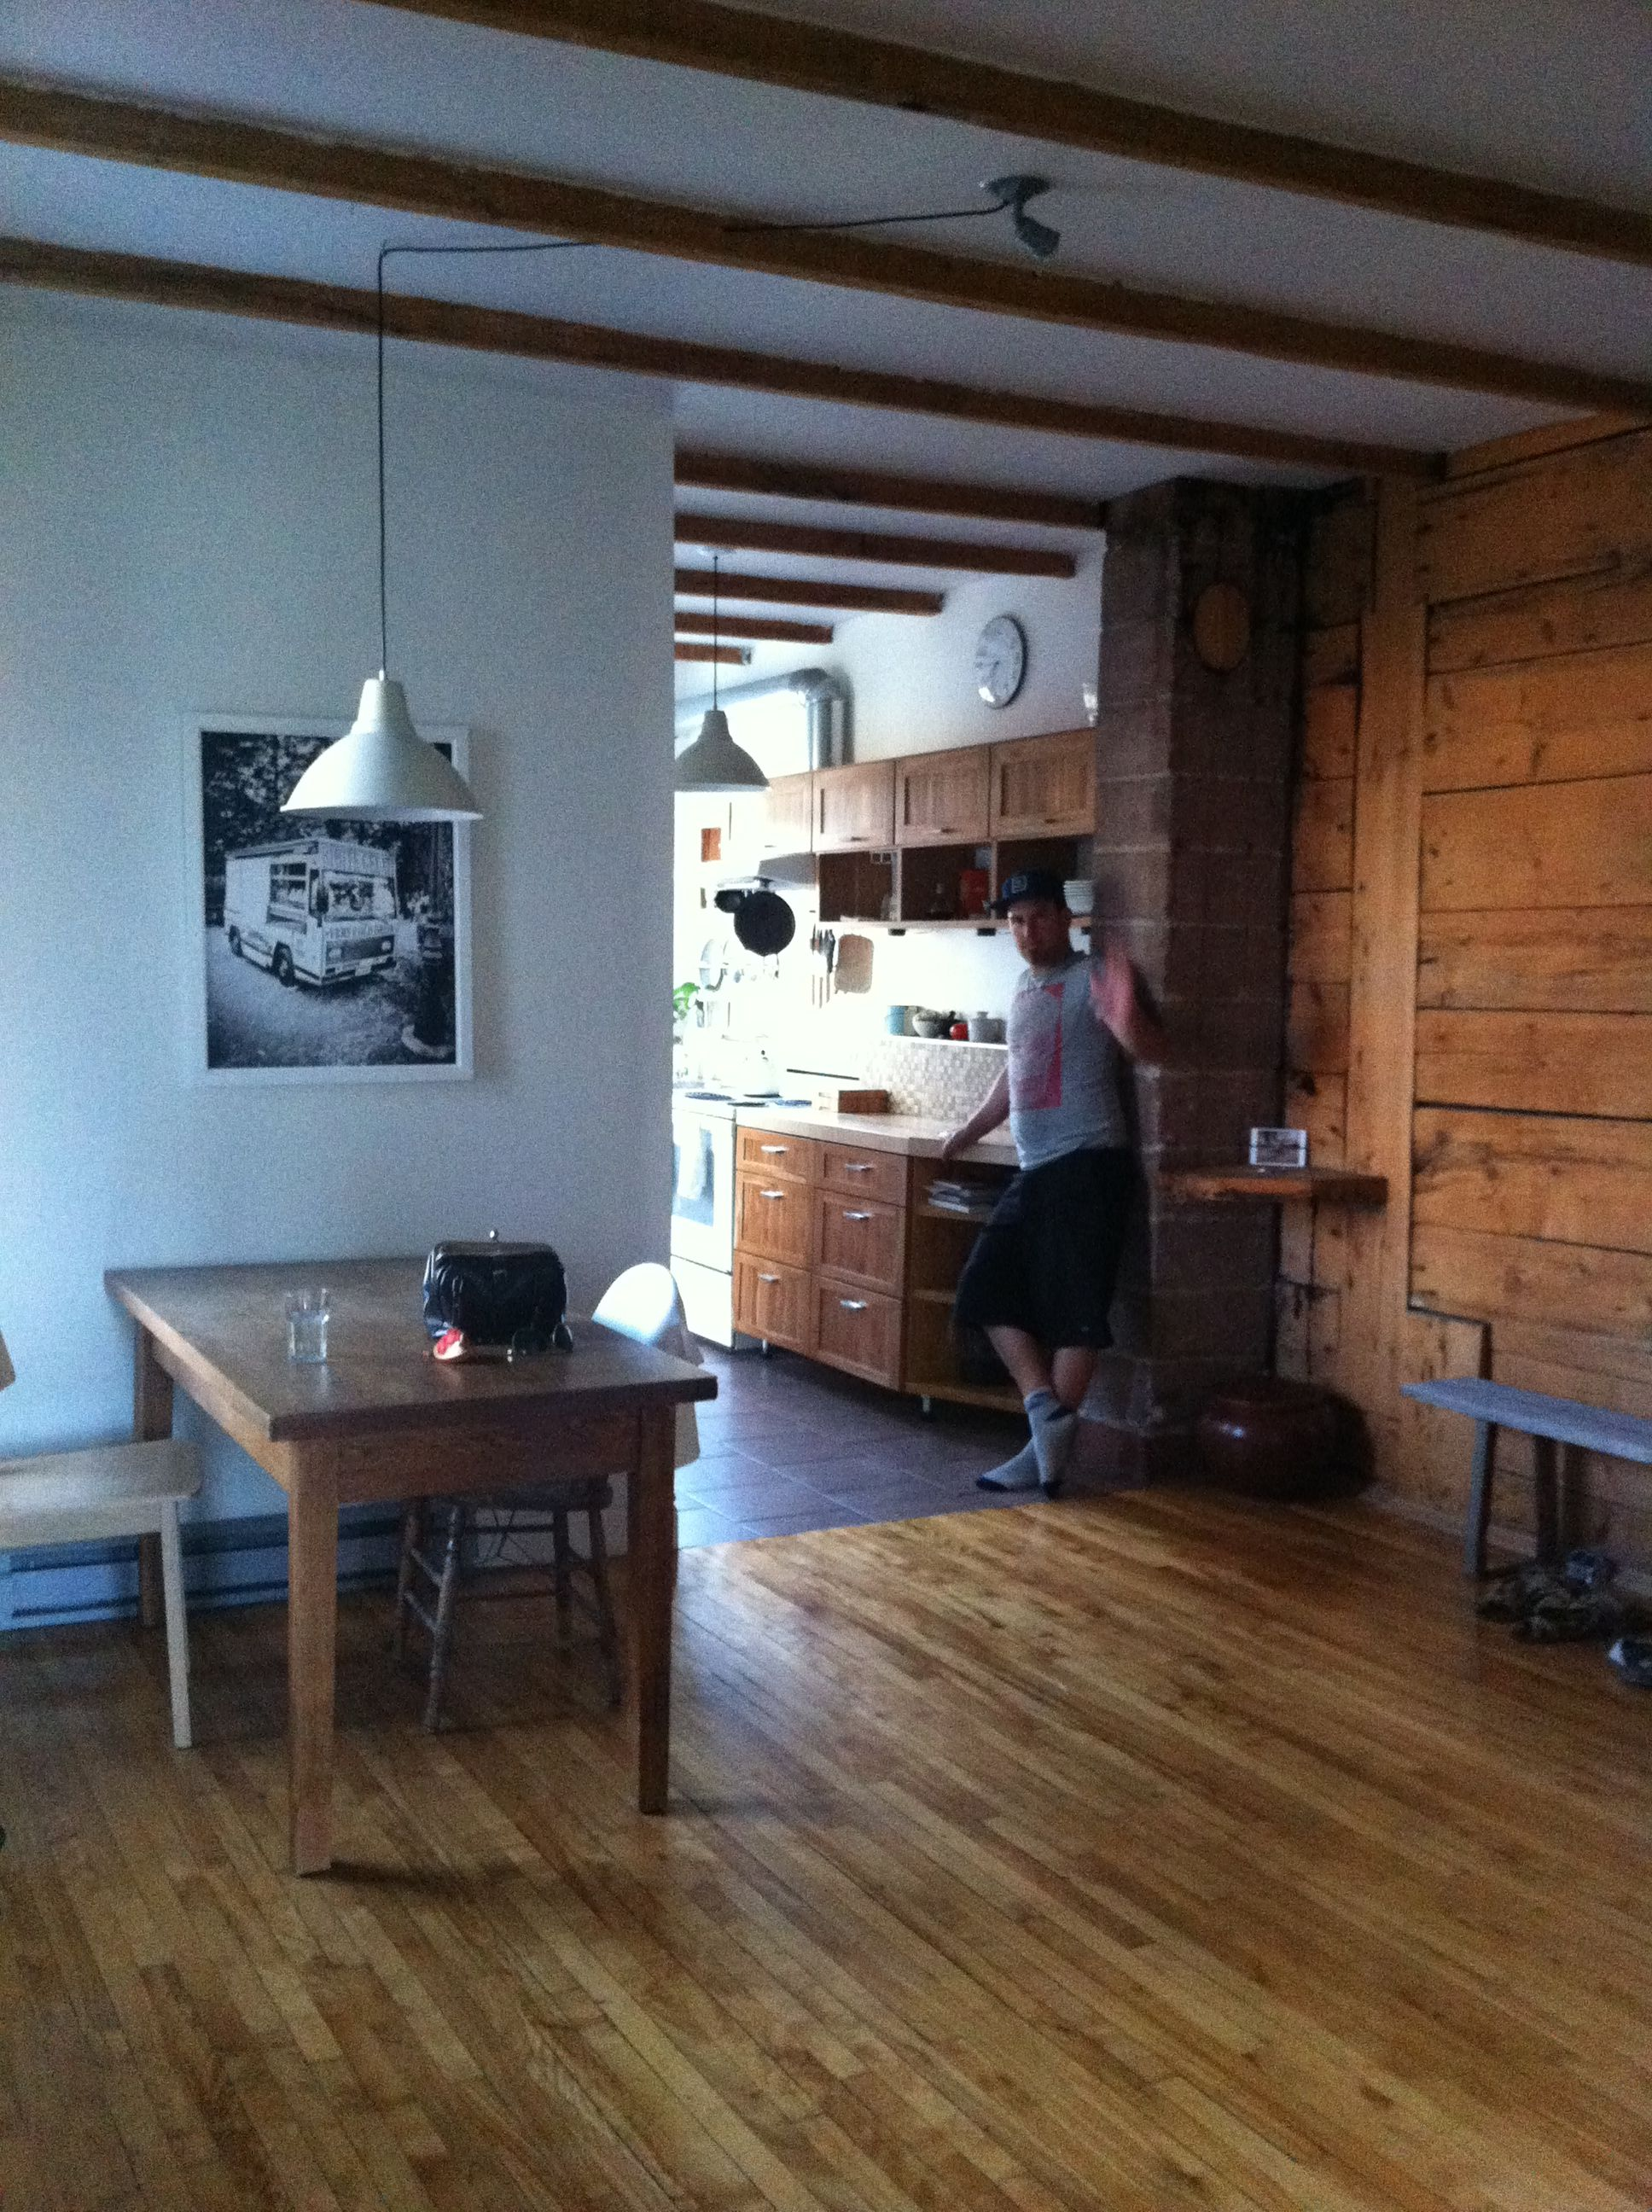 825. 7 day rental. One bedroom, Full kitchen, two patios